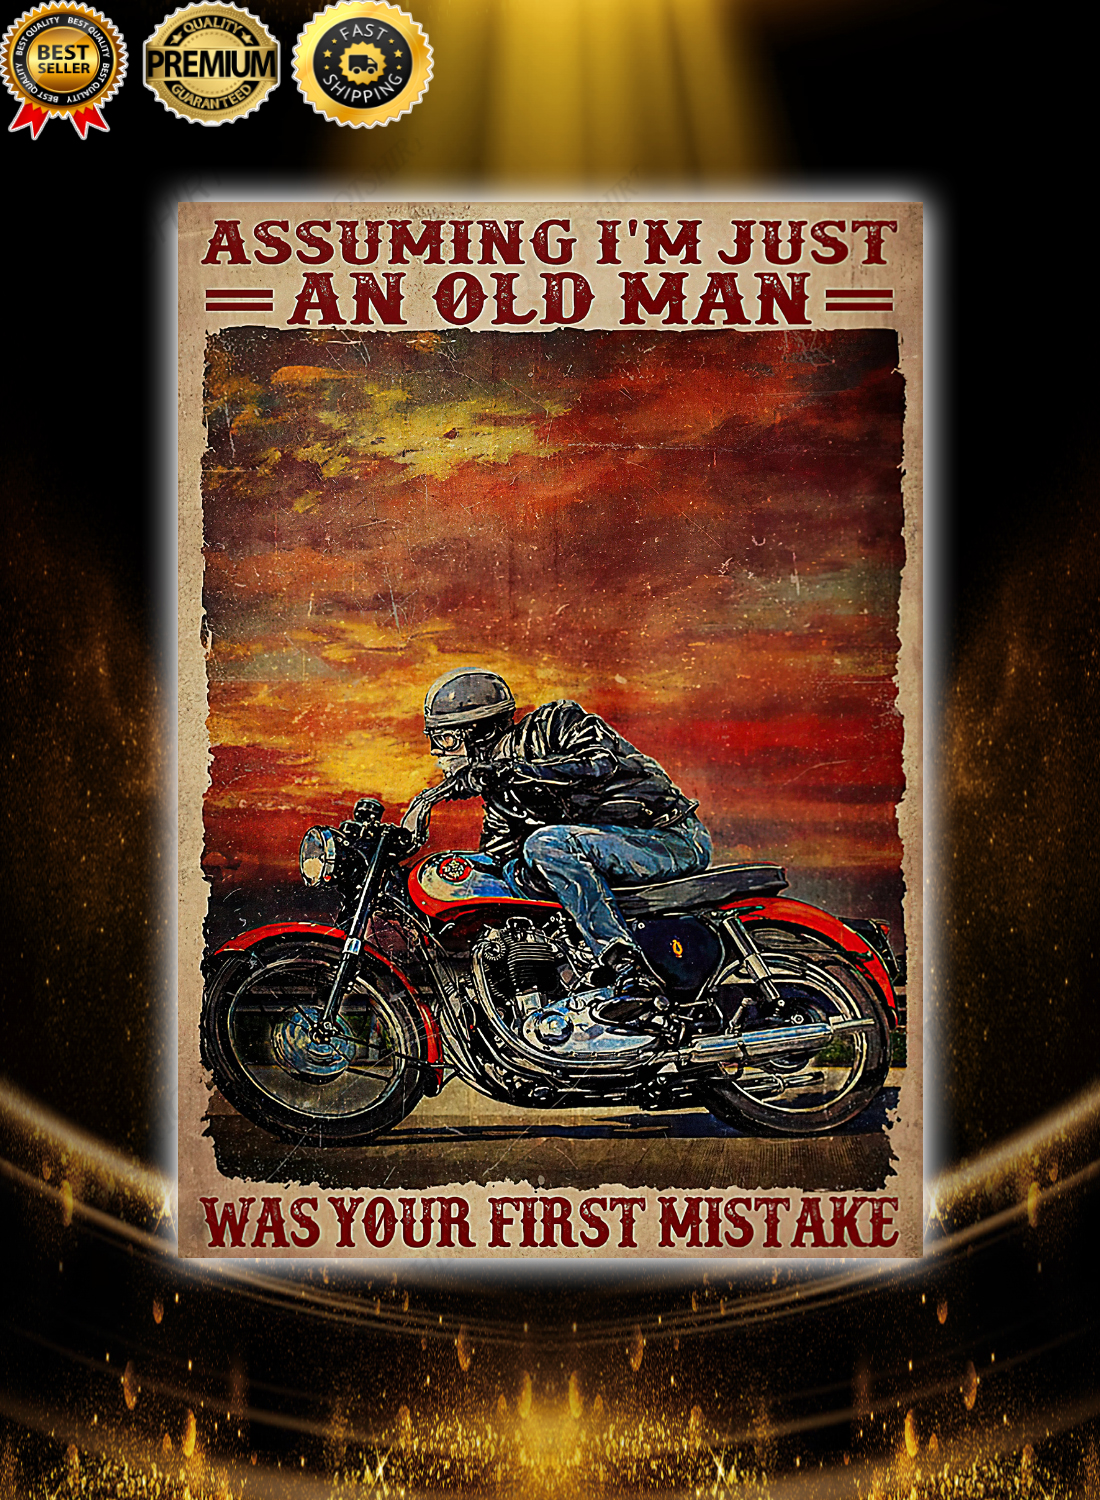 Motorcycle Assuming i'm just an old man was your first mistake poster 3